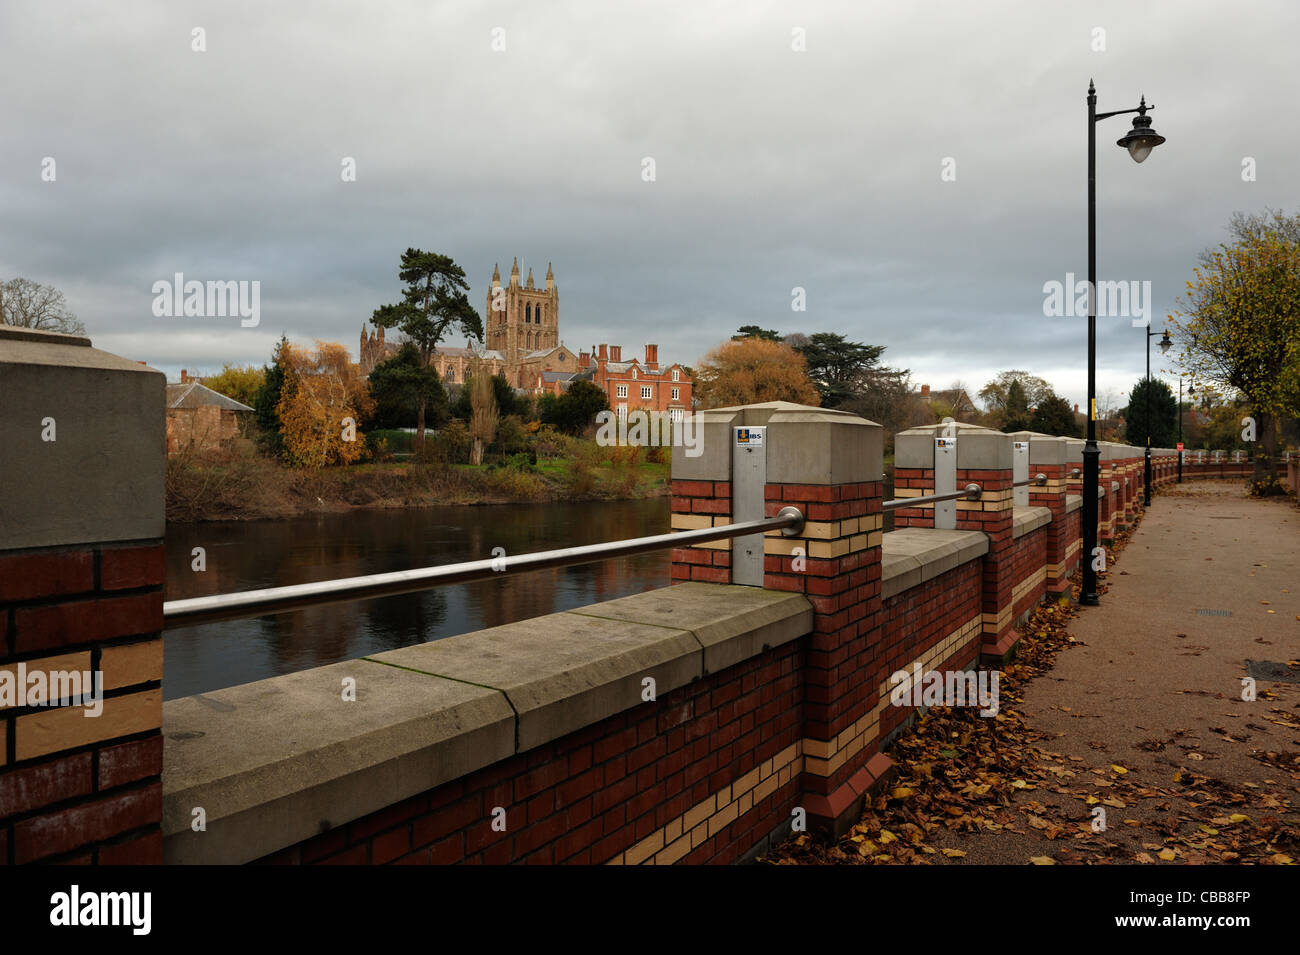 Hereford Cathedral and the flood defence barrier alongside the River Wye - Stock Image